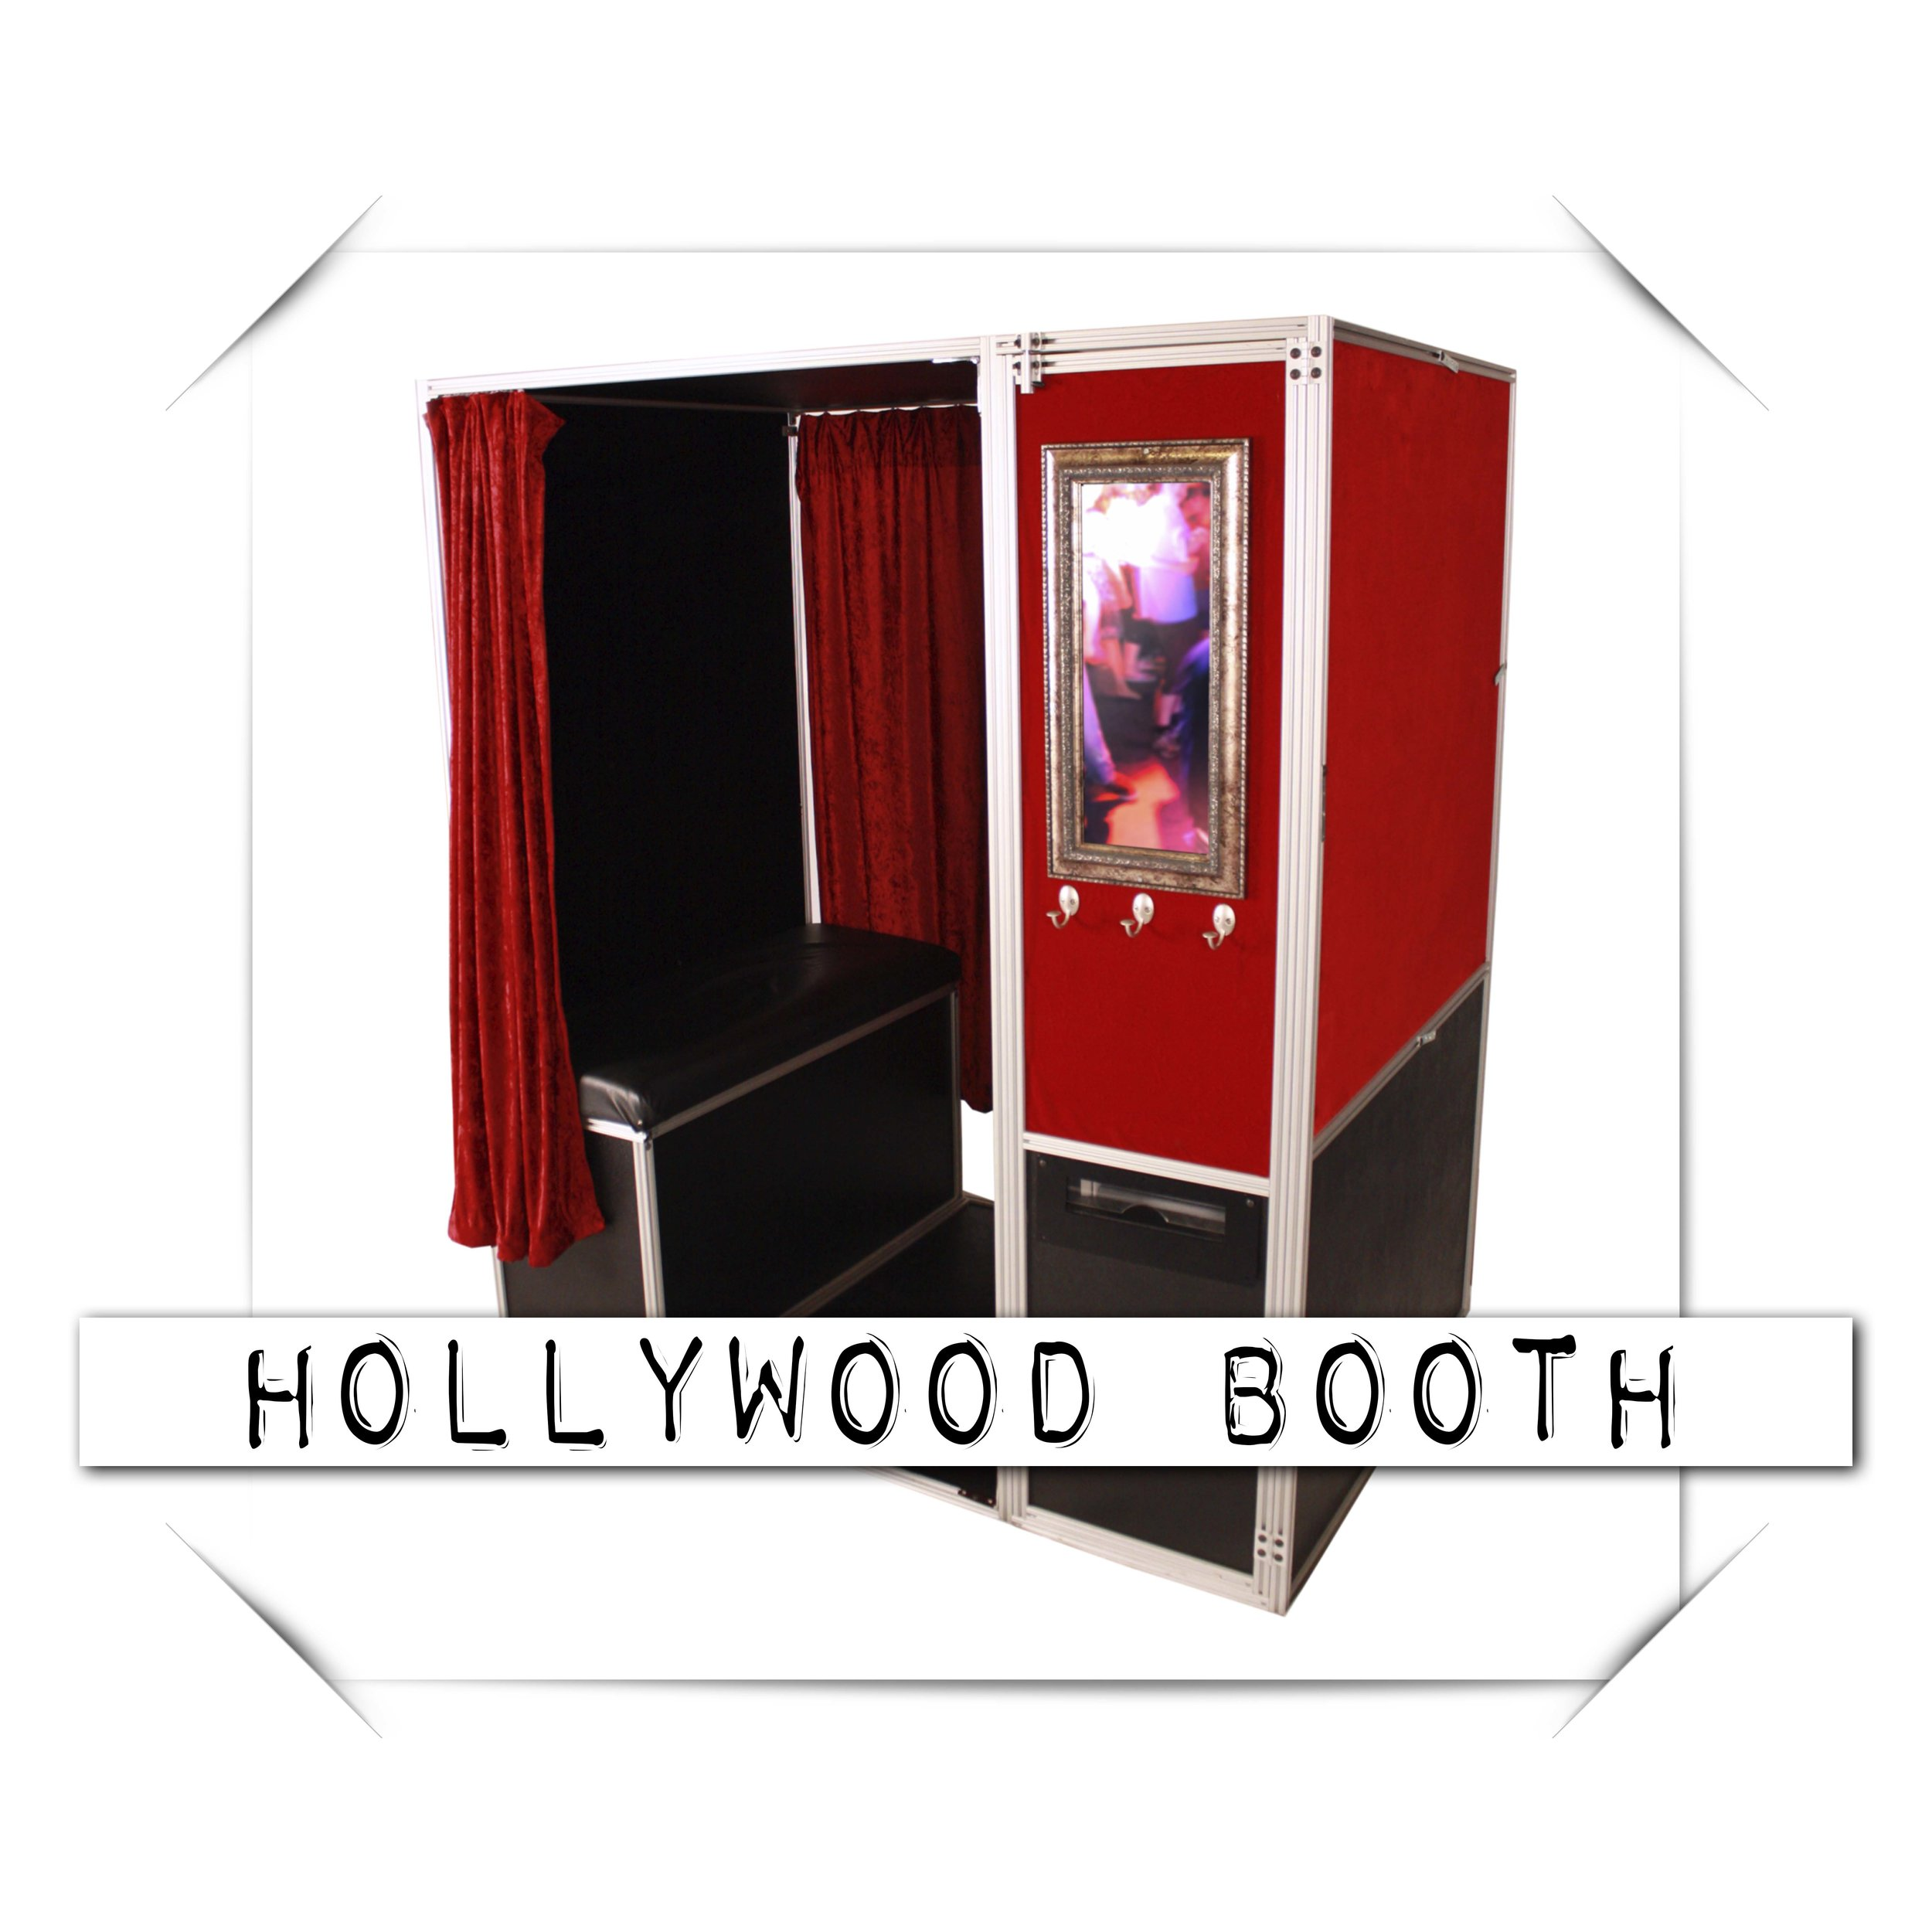 Hollywood_Booth.jpg